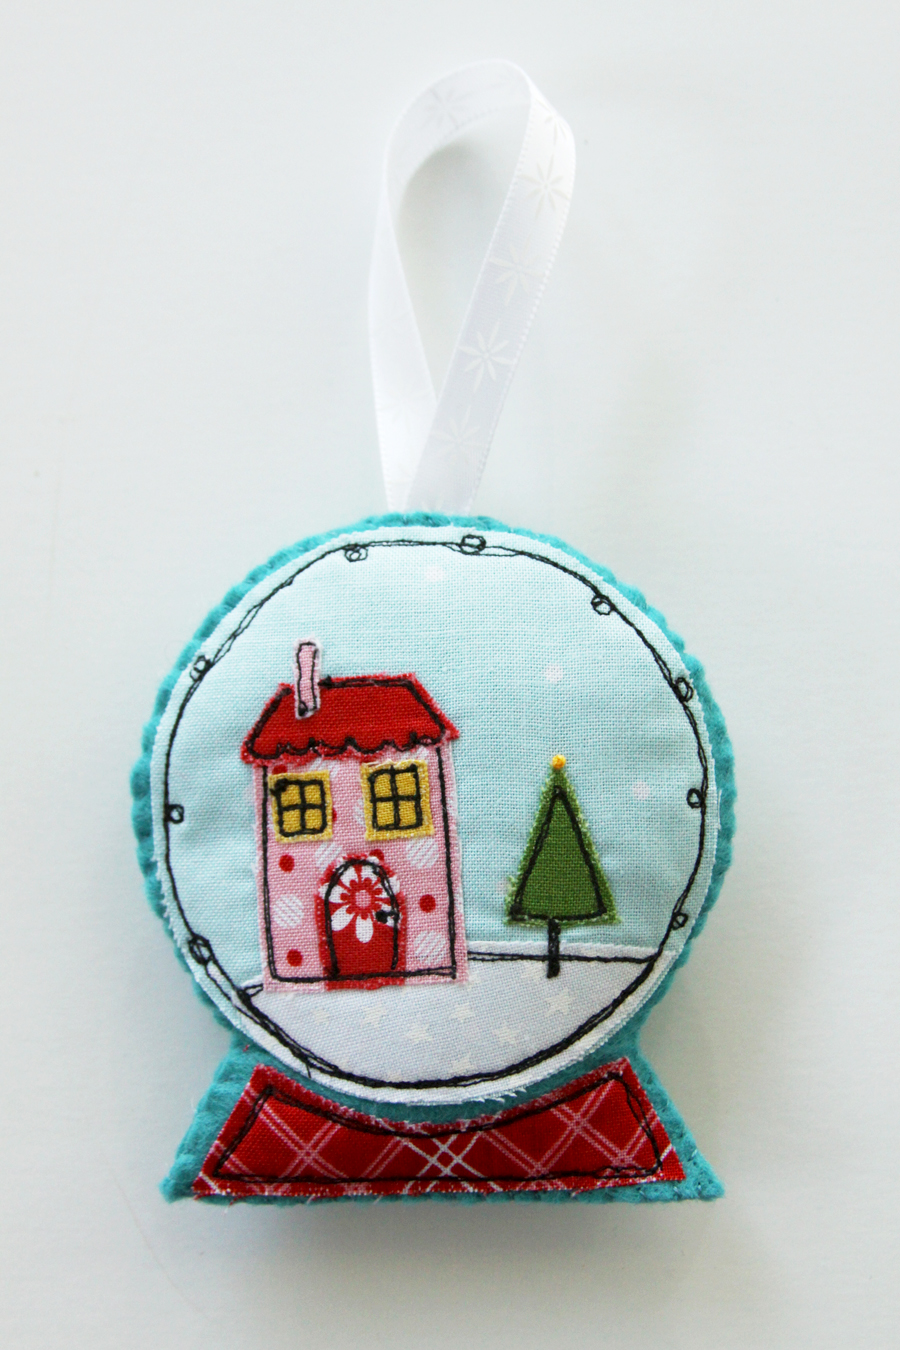 Fabric and Felt Snowglobe Ornaments